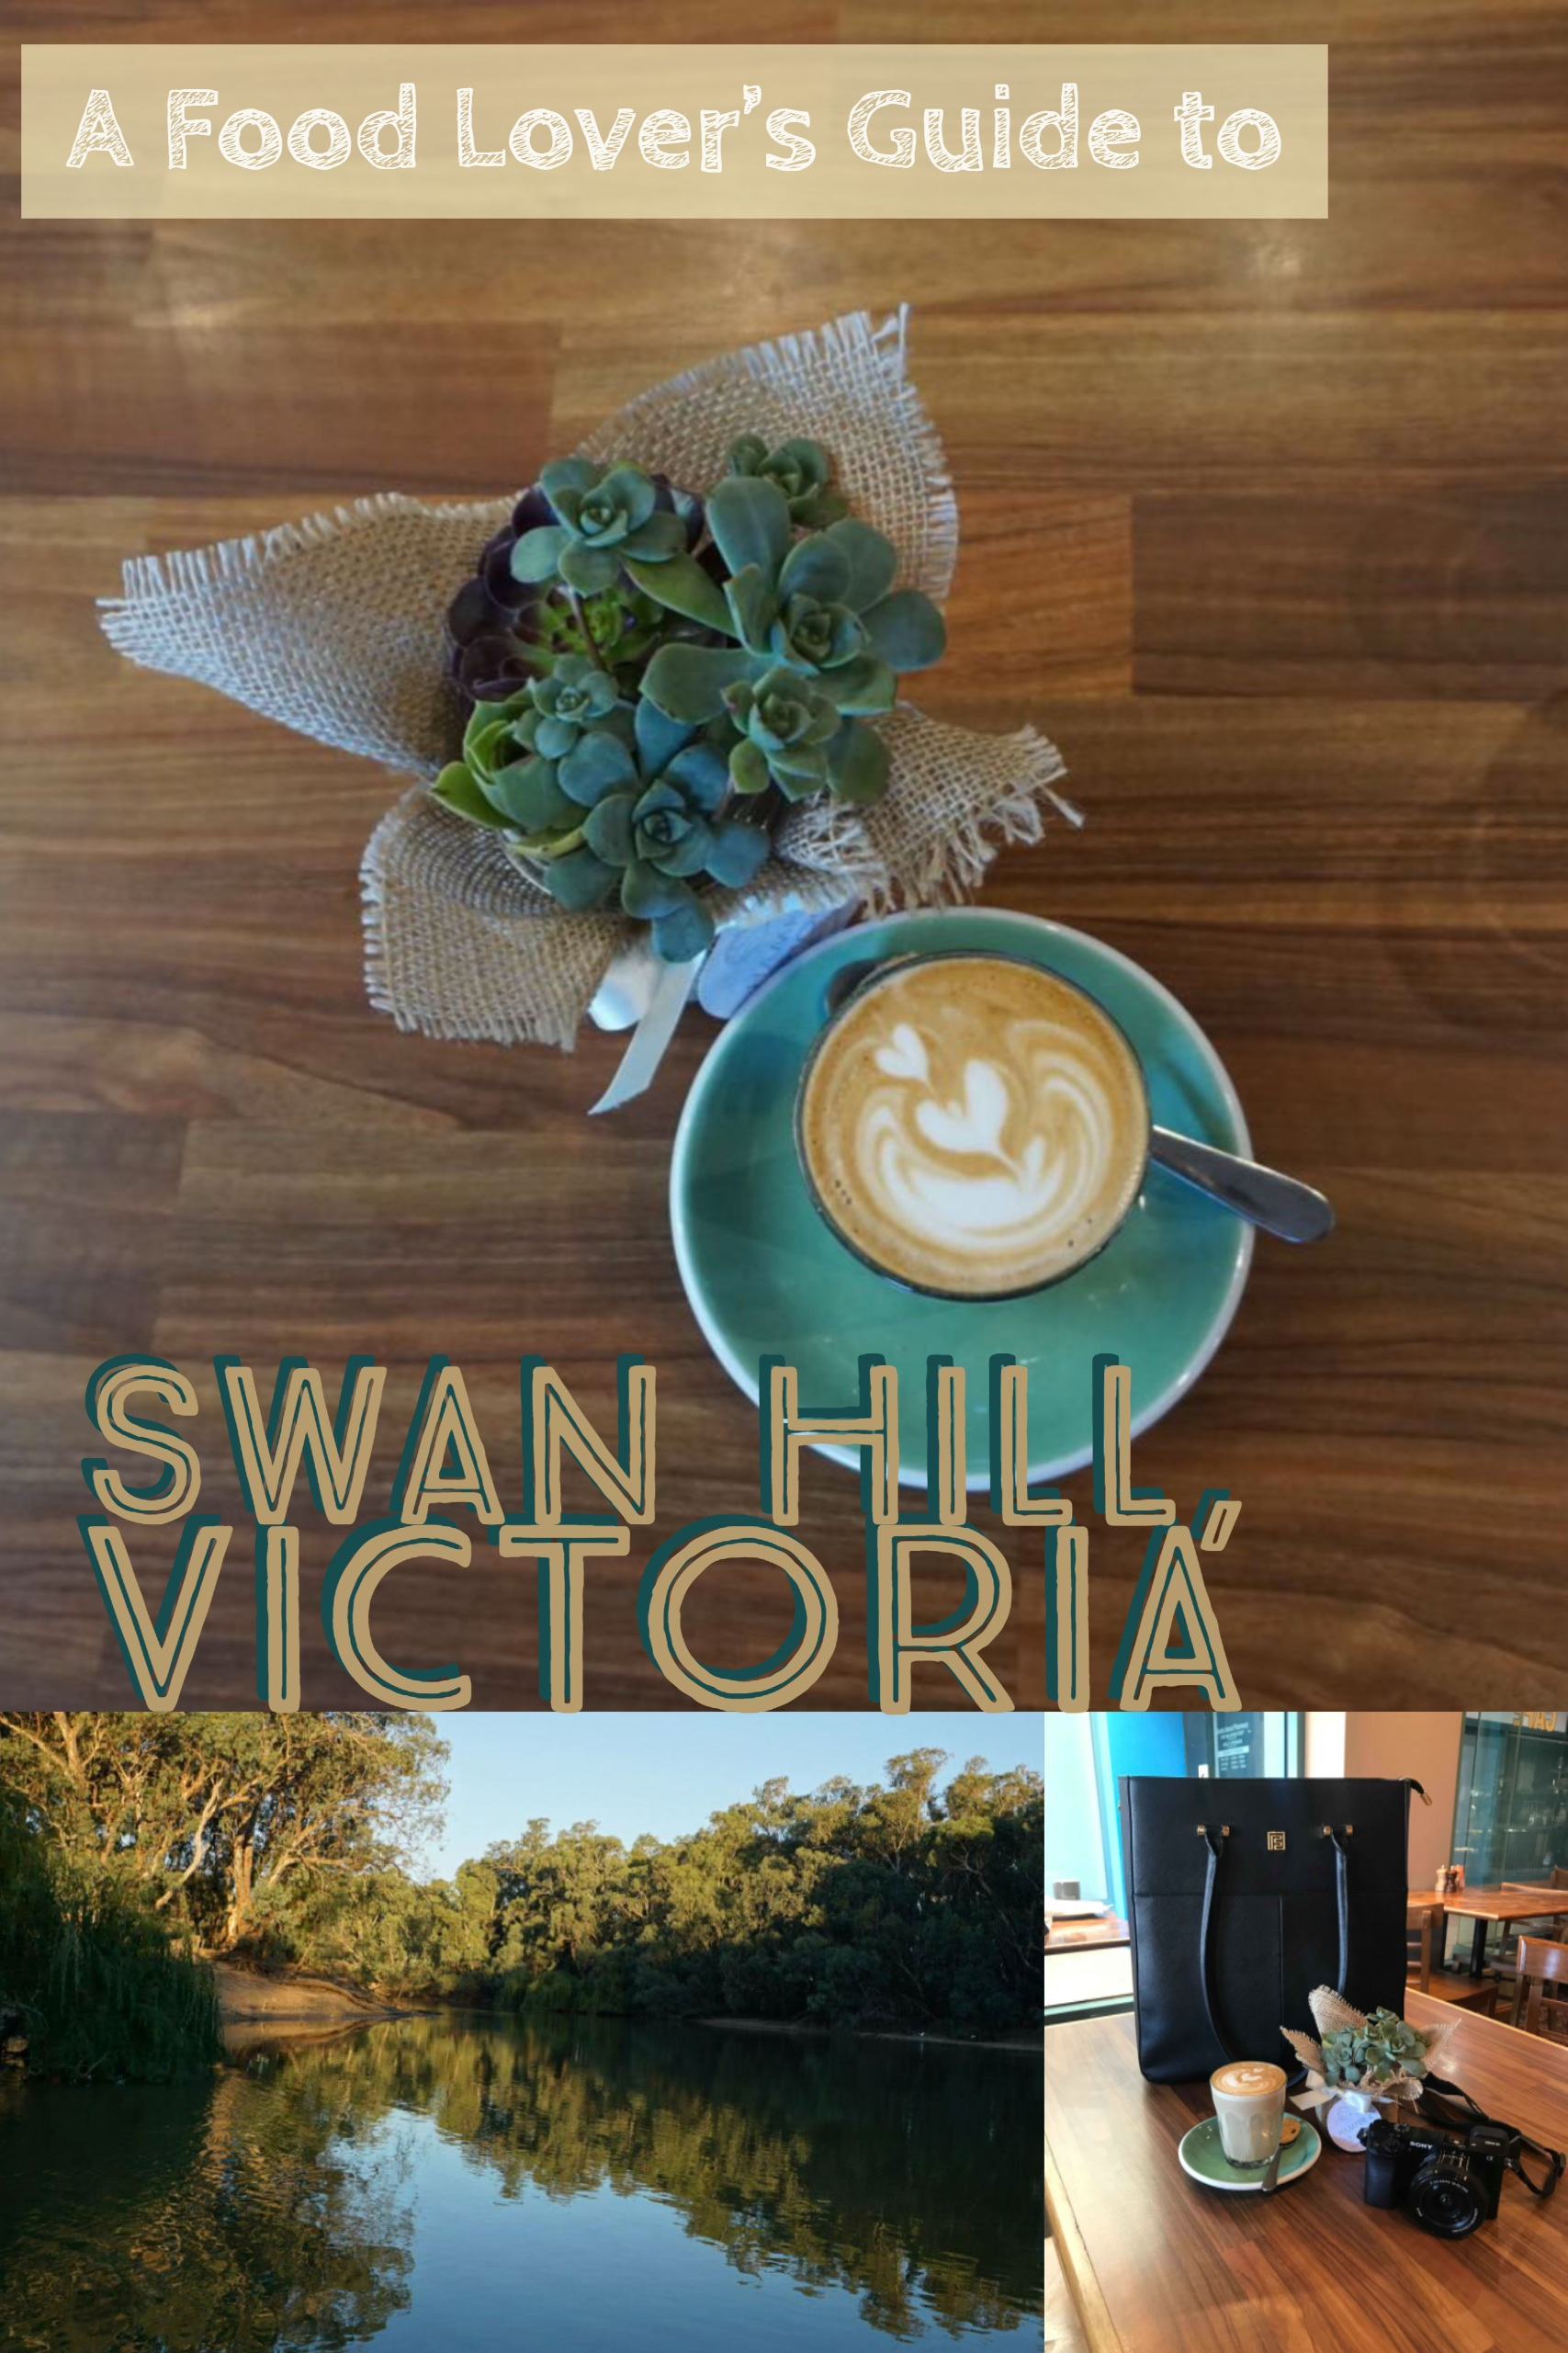 A Food Lover's Guide to Swan Hill Victoria